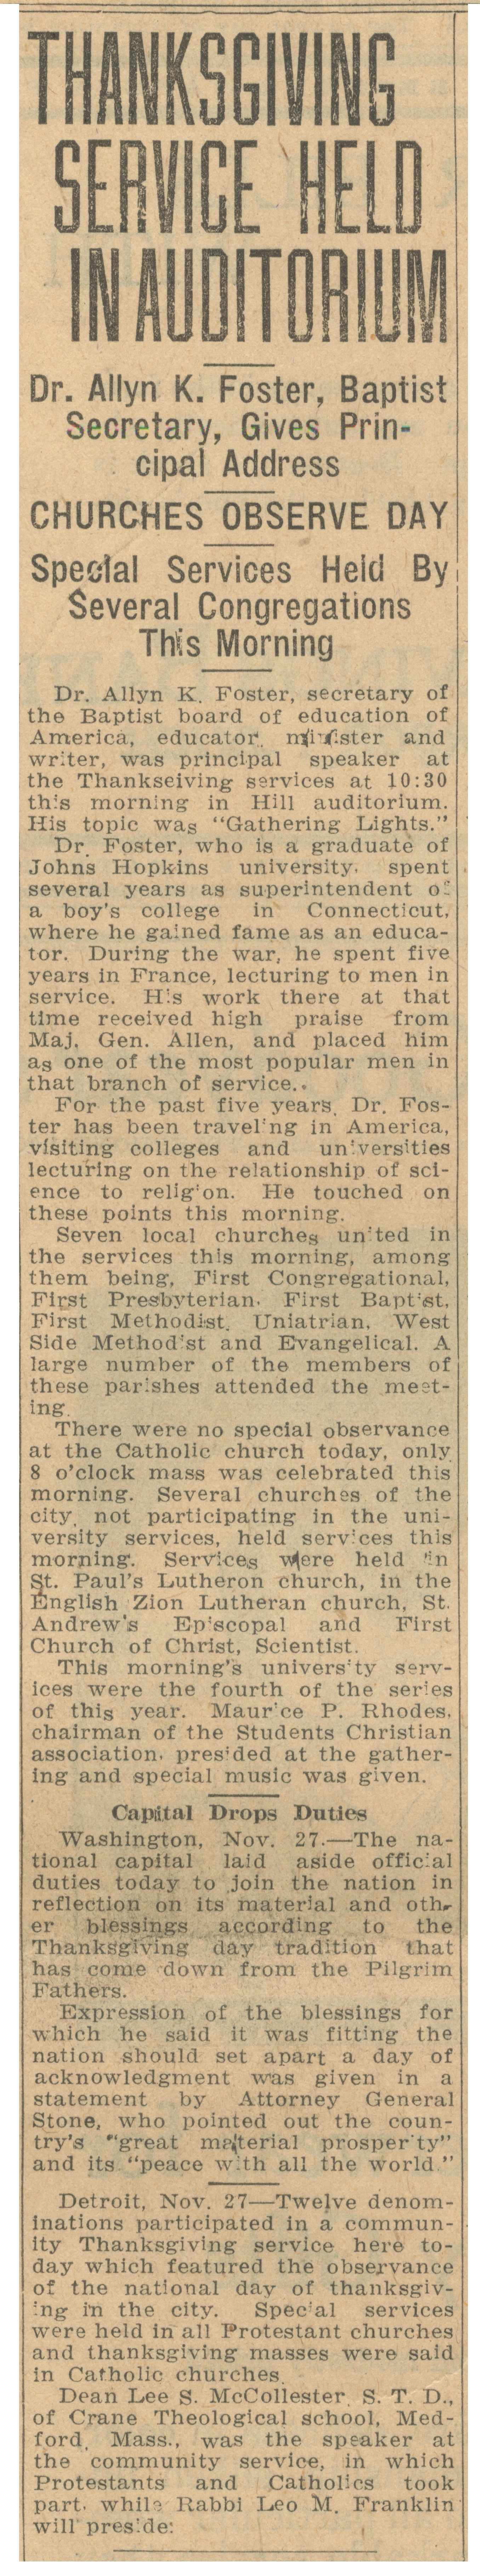 Thanksgiving Service Held In Auditorium: Dr. Allyn K. Foster, Baptist Secretary, Gives Principal Address - November 27, 1924 image